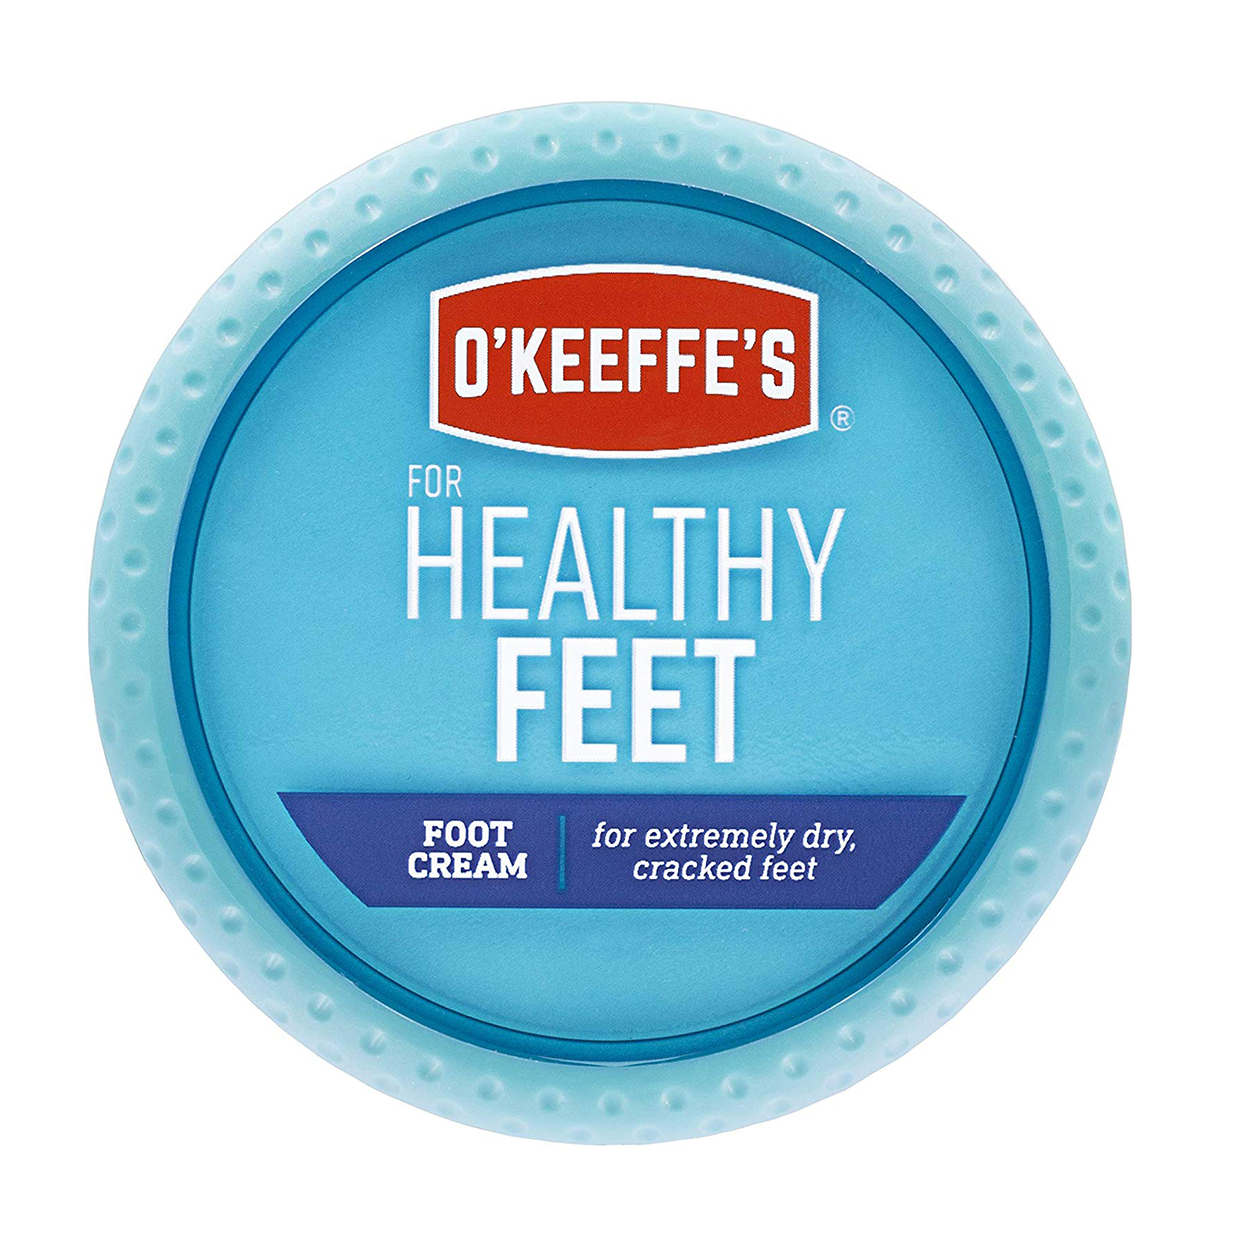 Amazon Shoppers Swear By This $7 Cream to Smooth Cracked, Dry Feet All Winter